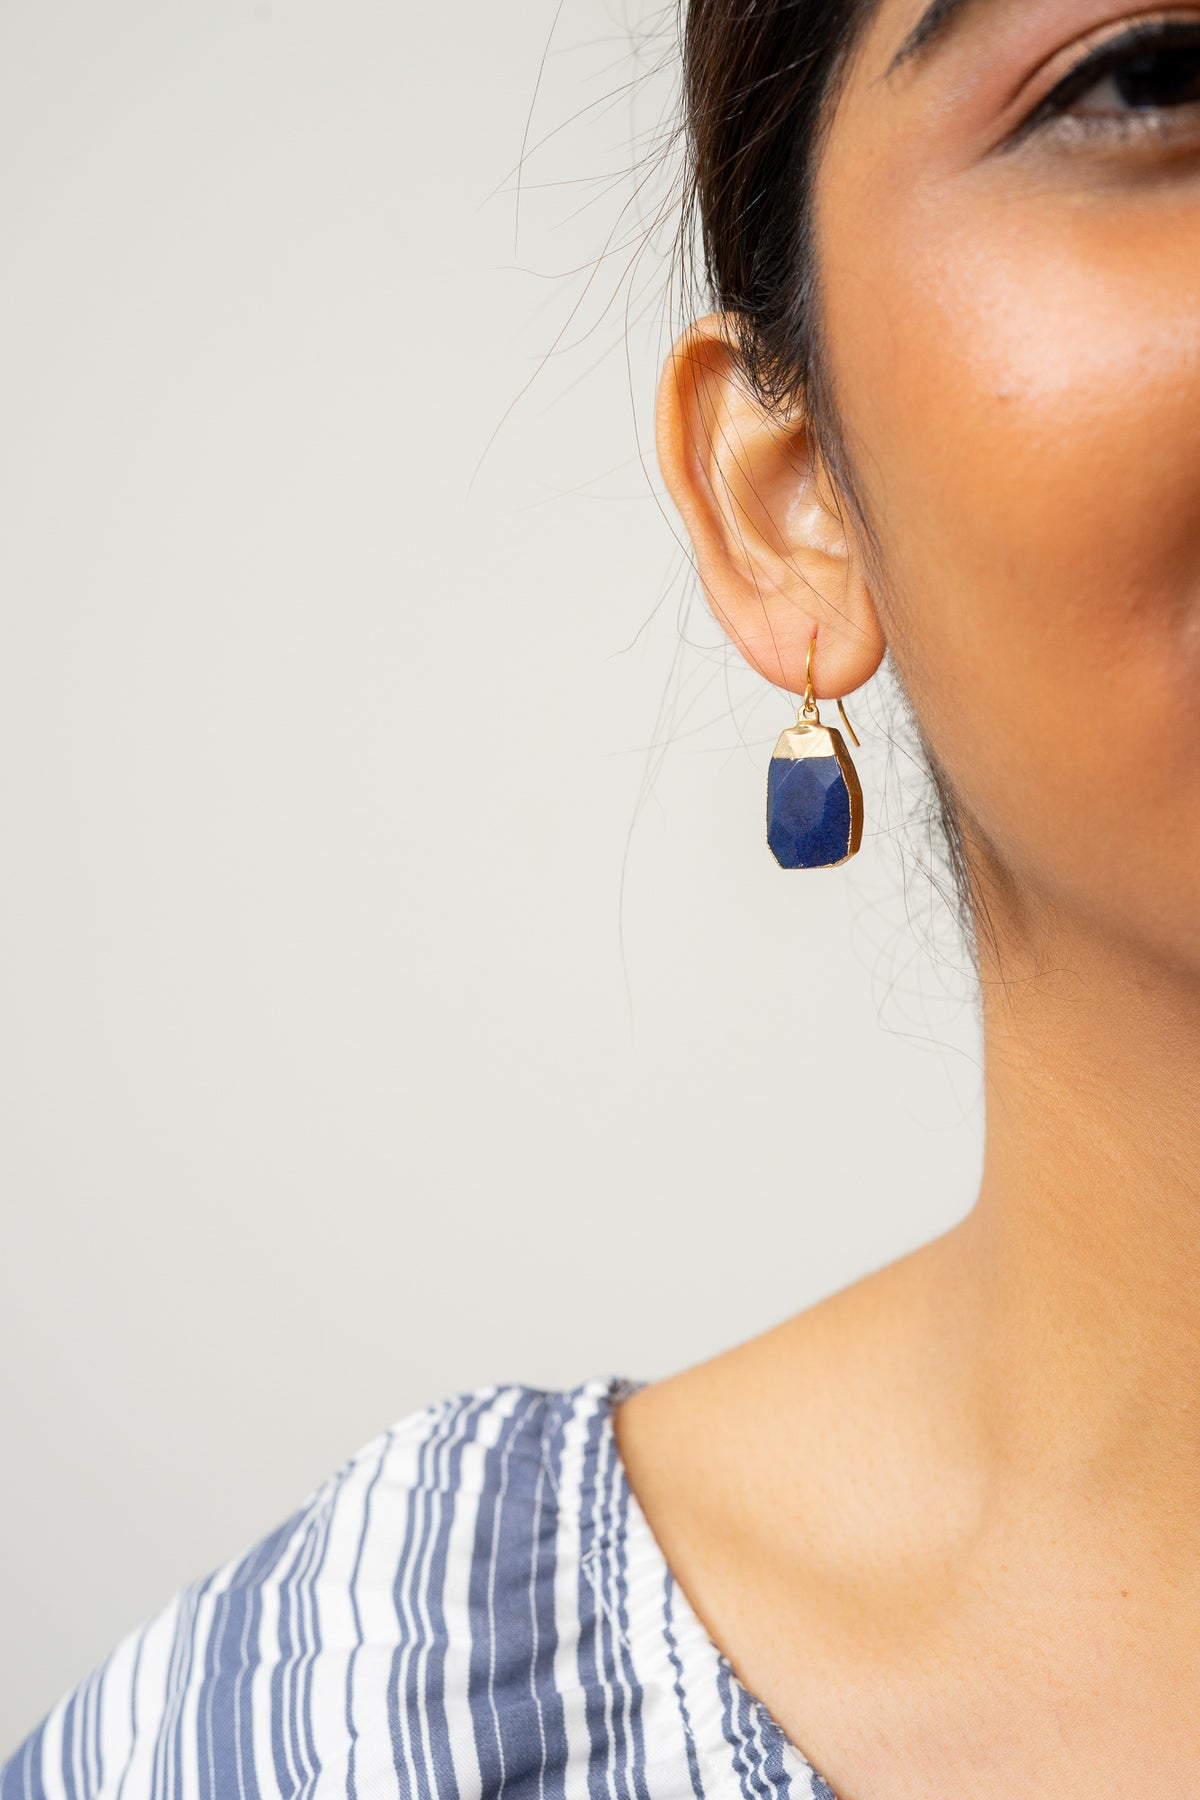 dark blue jade dangle earrings on model